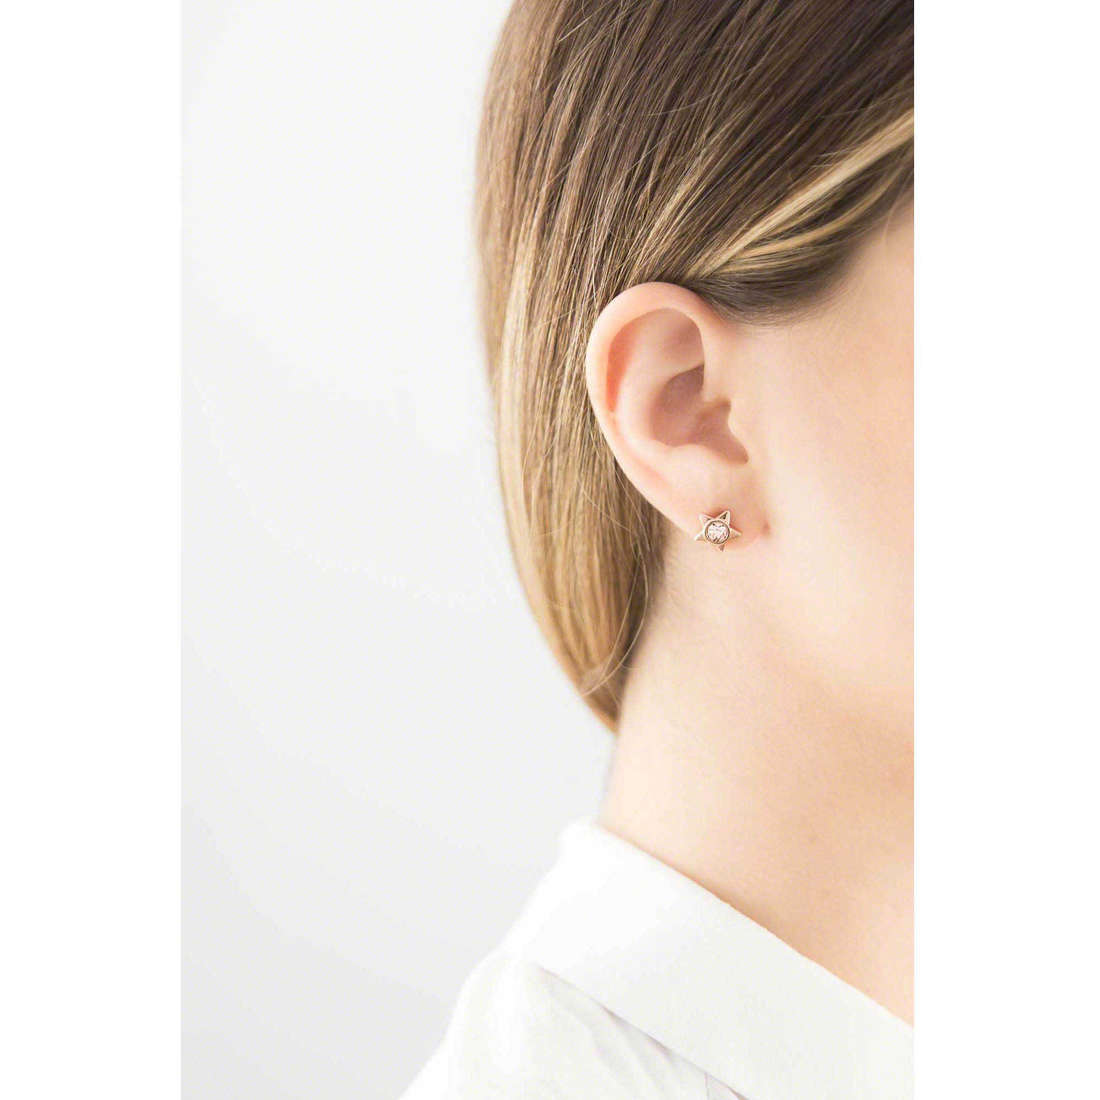 Brosway boucles d'oreille Epsilon femme BEO26 photo wearing